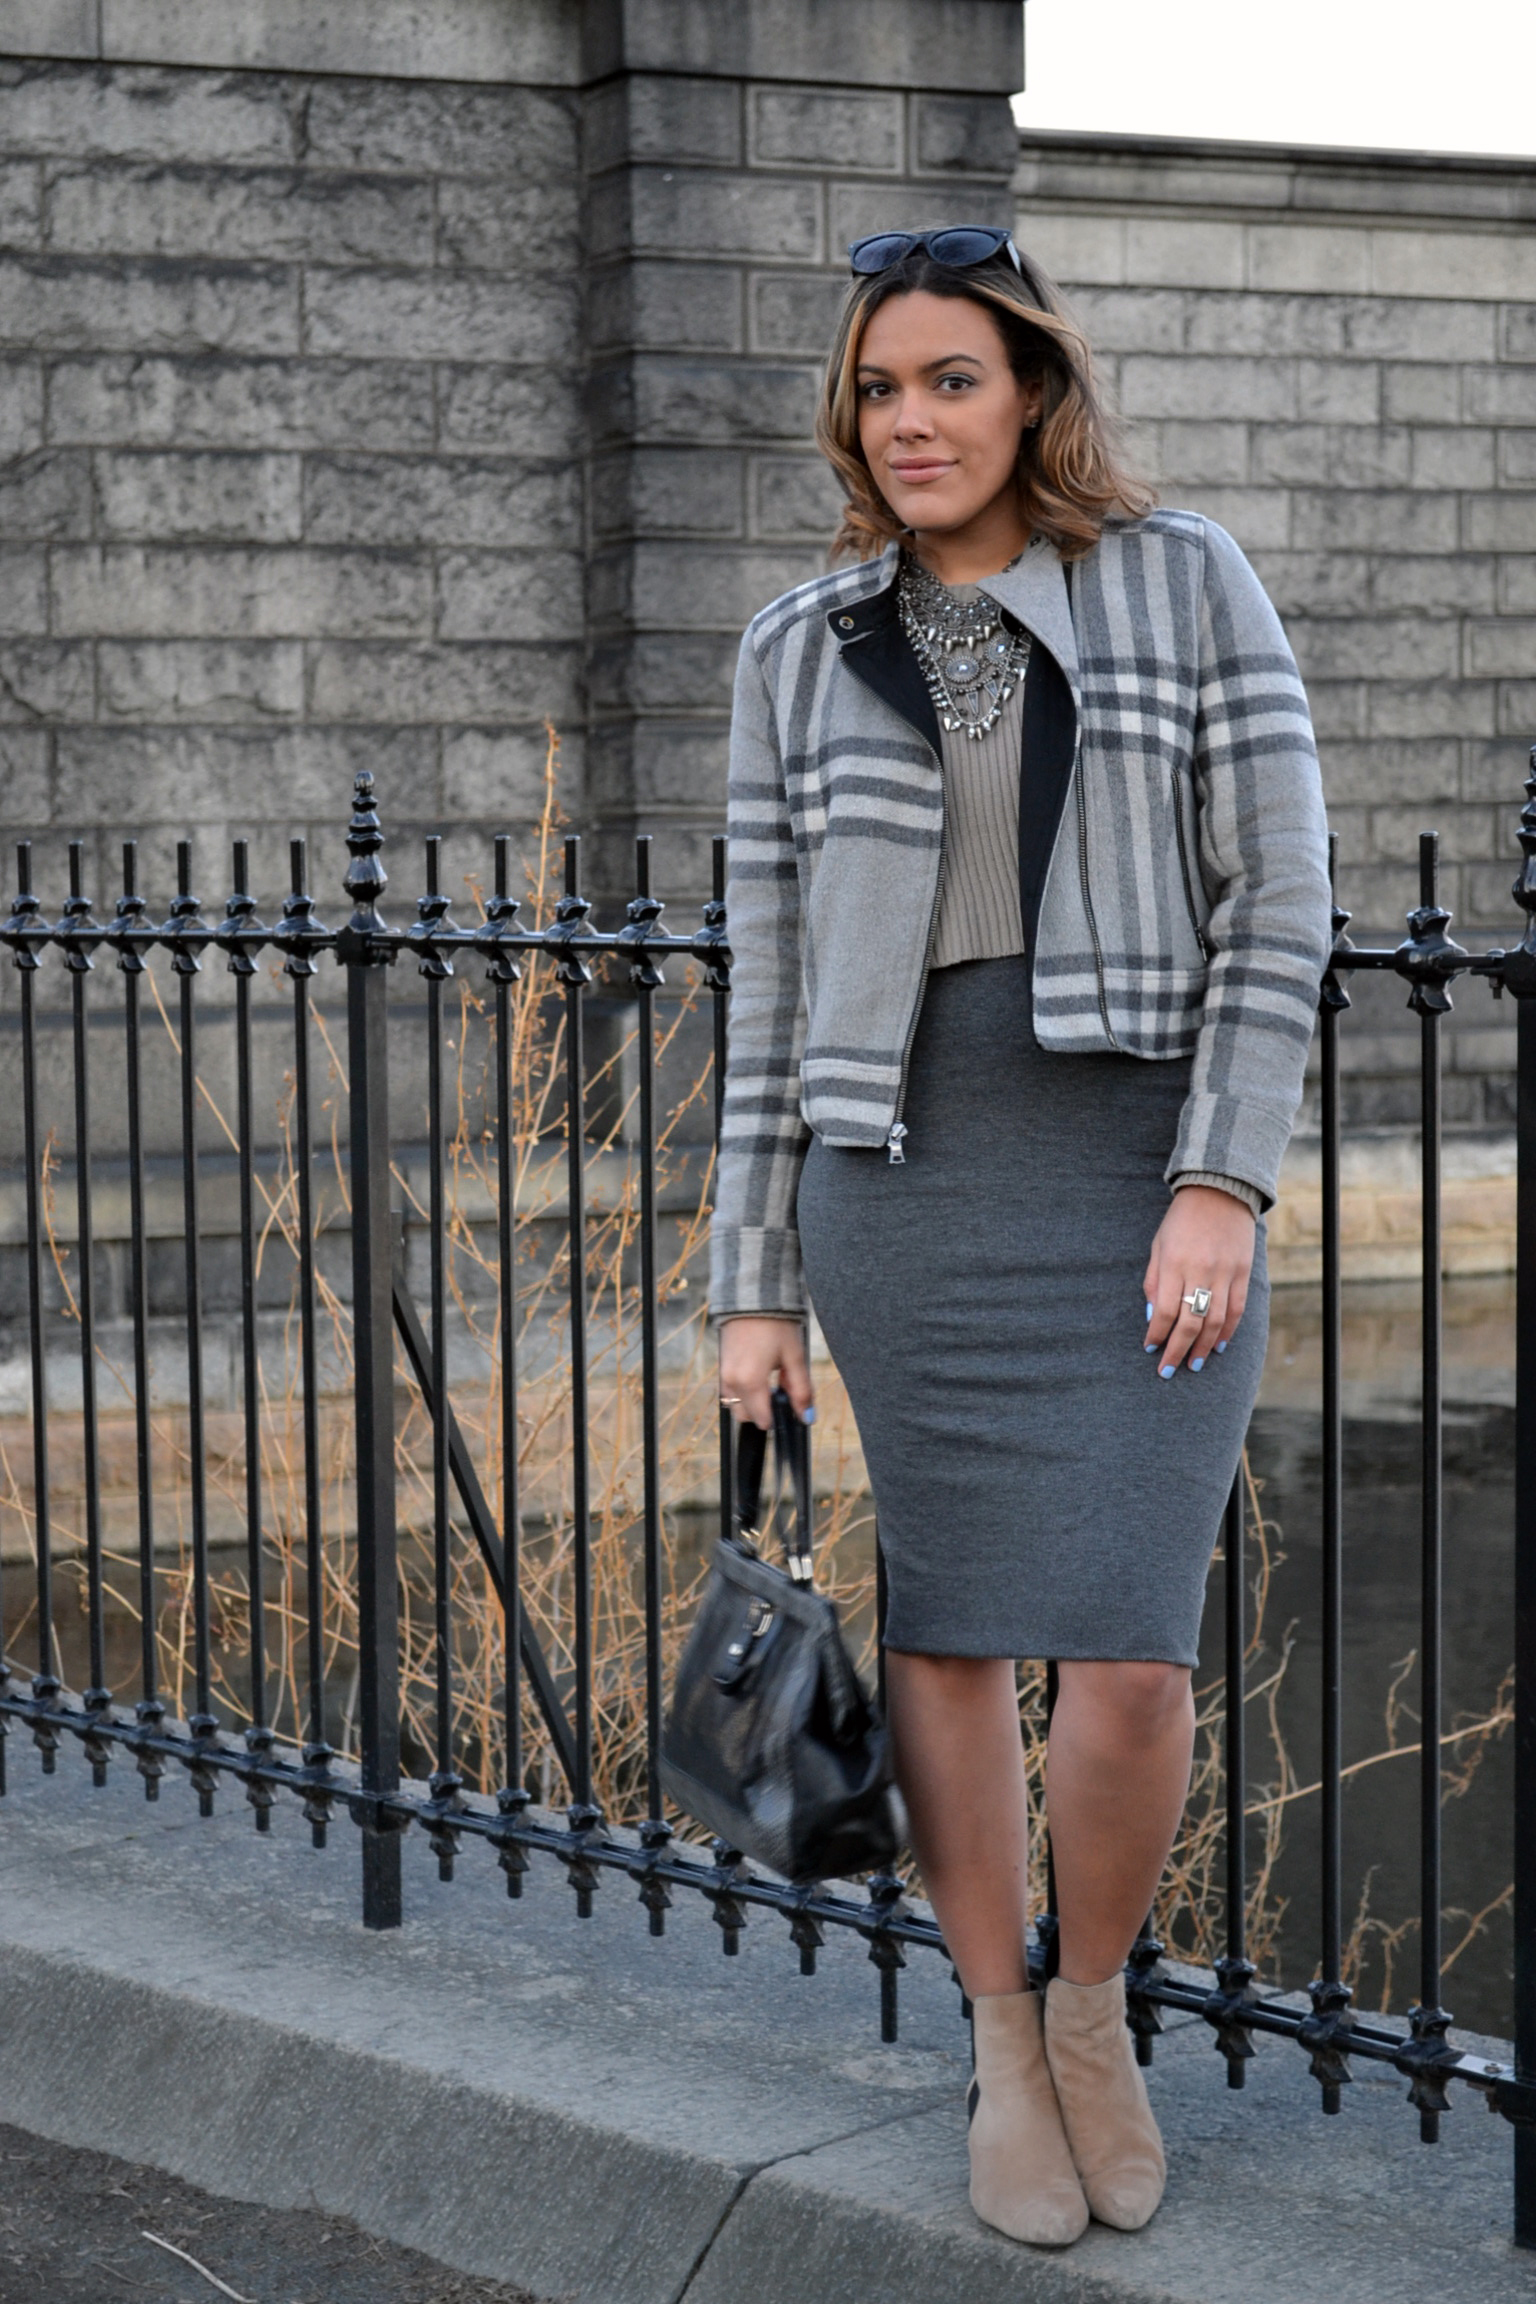 Wearing: Gap Jacket (sold out), Express Skirt ( here ), Zara Booties (sold out) & Necklace, Forever 21 Sweater, Cole Haan Bag (old)